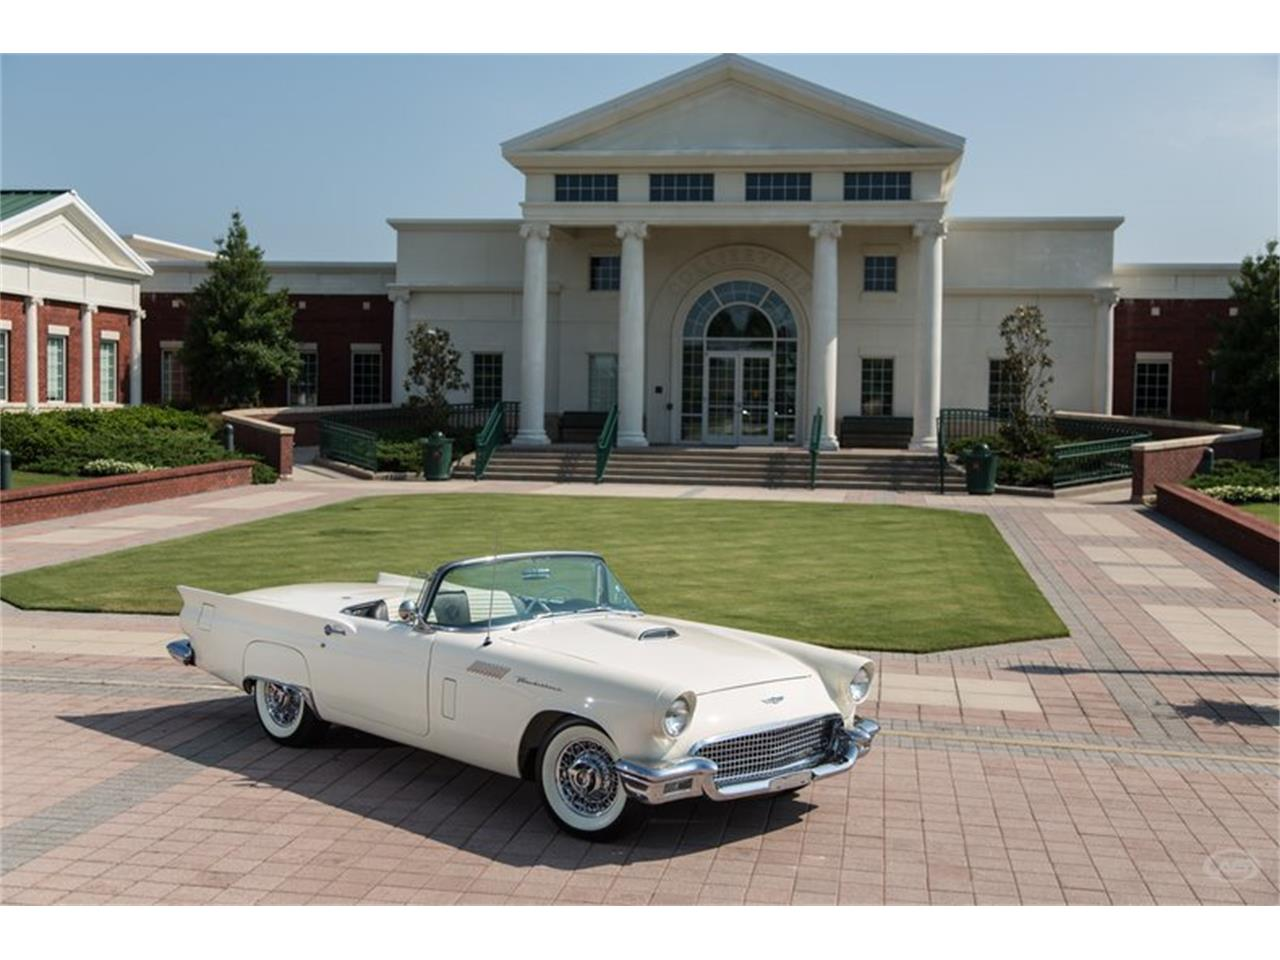 Large Picture of Classic 1957 Ford Thunderbird - $44,900.00 - H4Y9